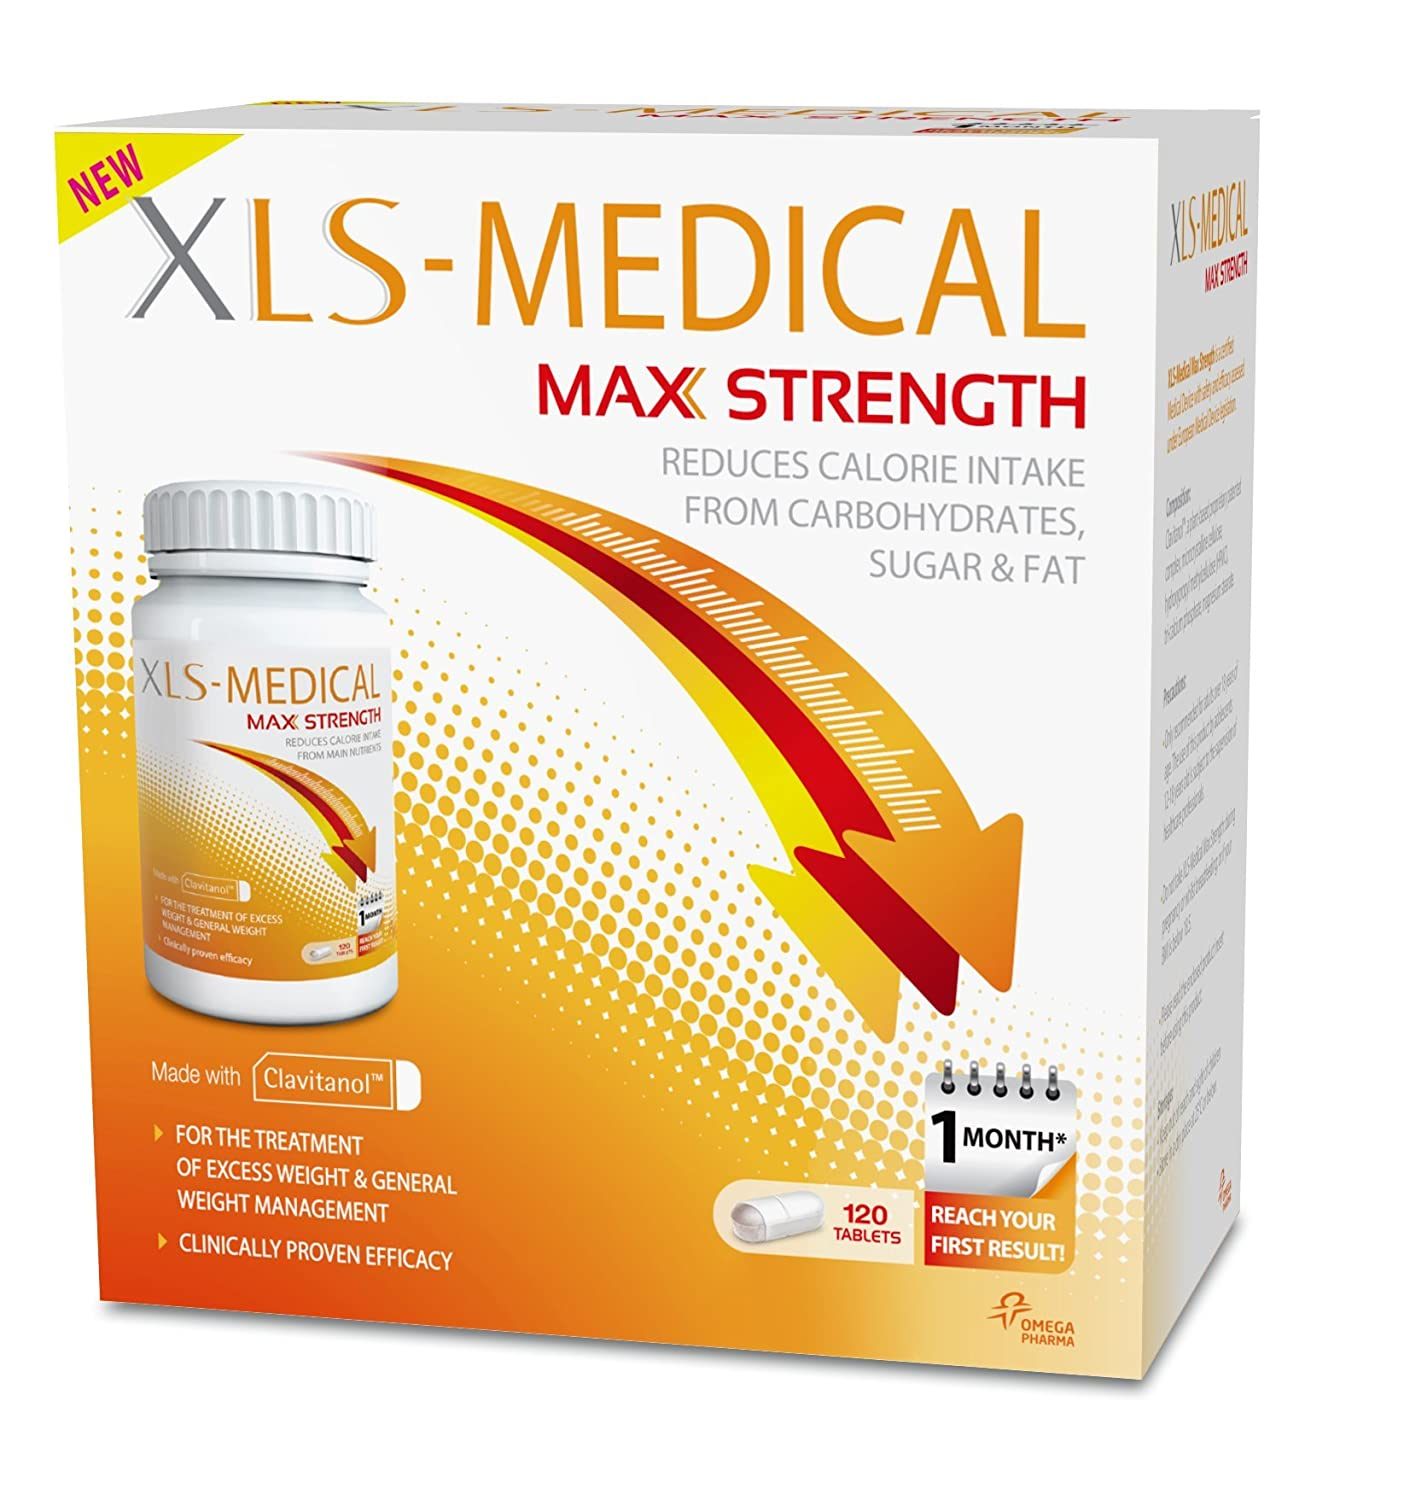 xls medical max strength diet pills for weight loss pack of 40